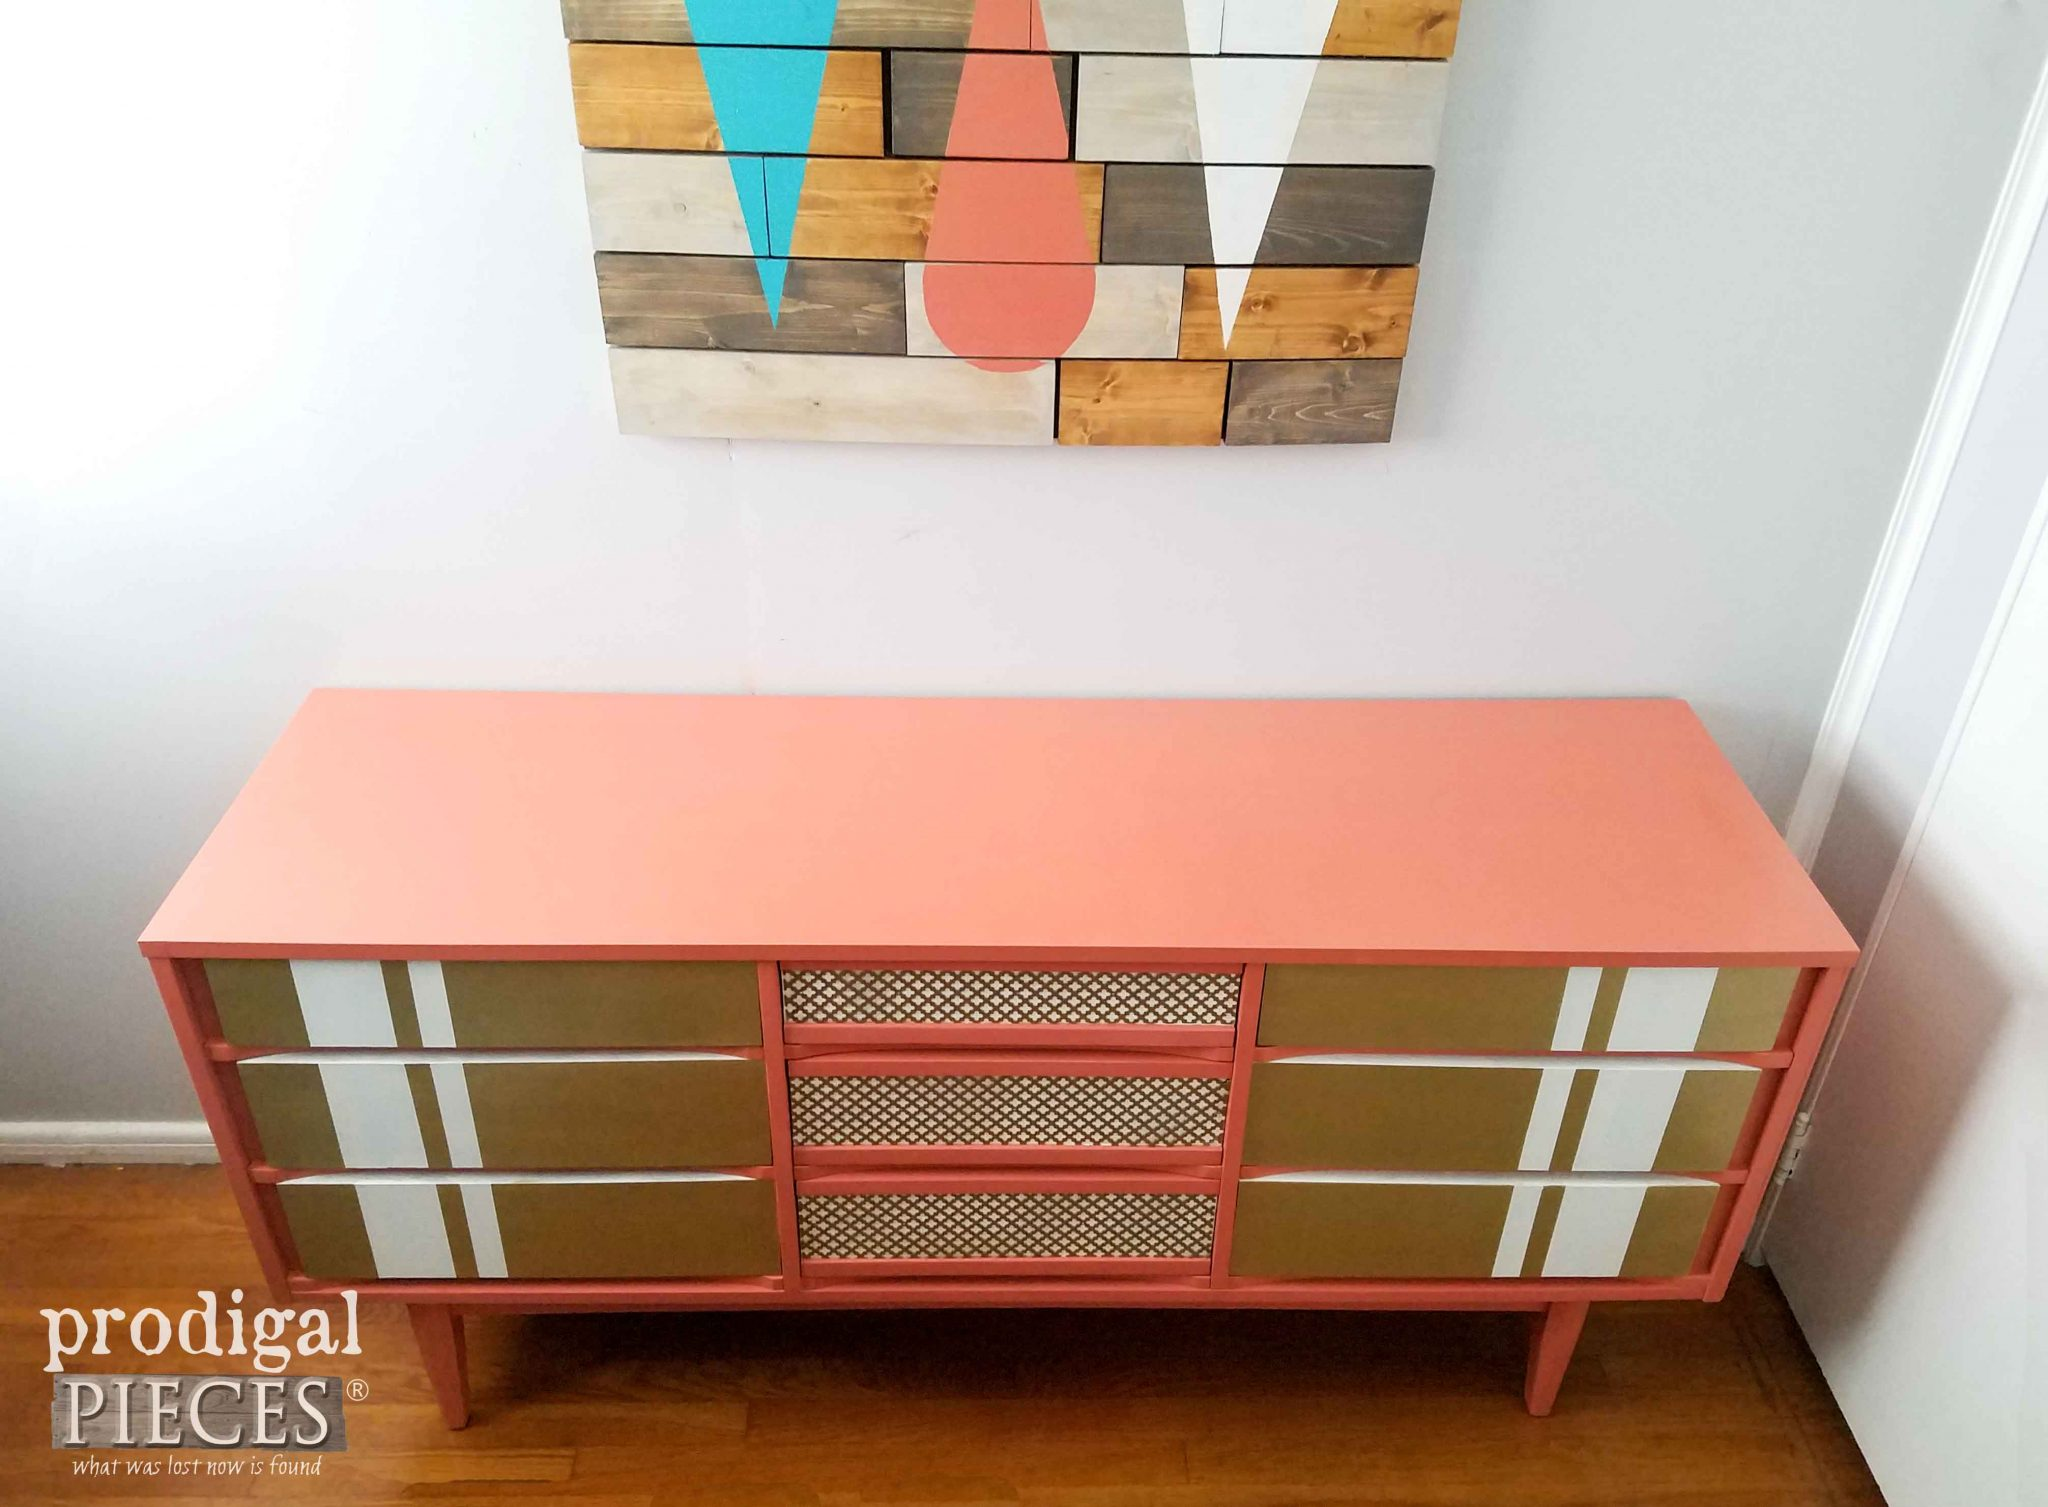 Top View of Modern Chic Mid Century Dresser | Prodigal Pieces | prodigalpieces.com